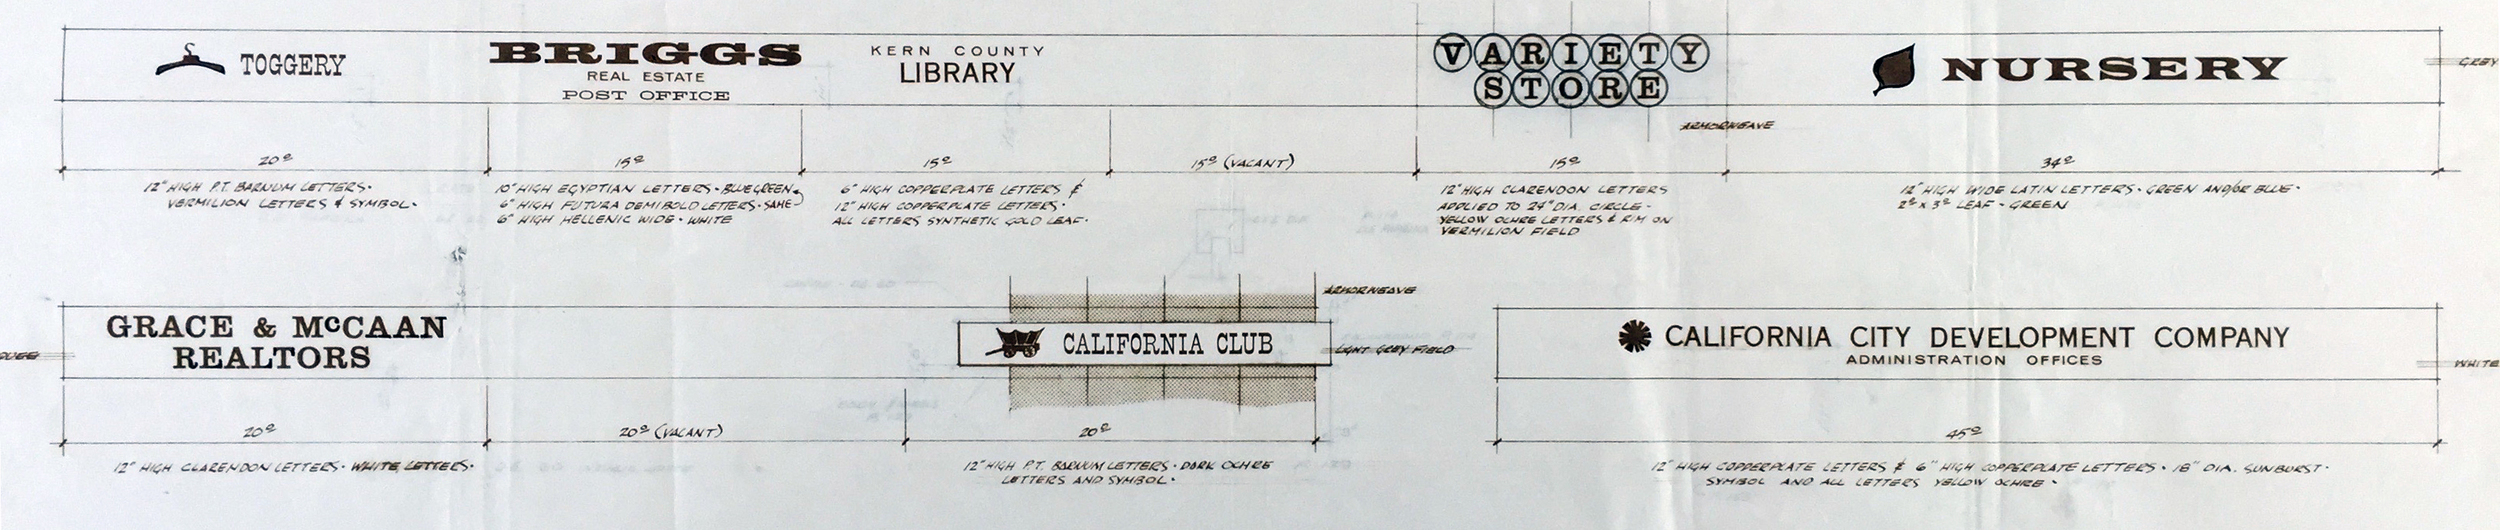 Smith and Williams, Architects and Engineers. Marquee - Sign Layouts, California City. 1961. Architecture and Design Collection, University Art Museum, UCSB.